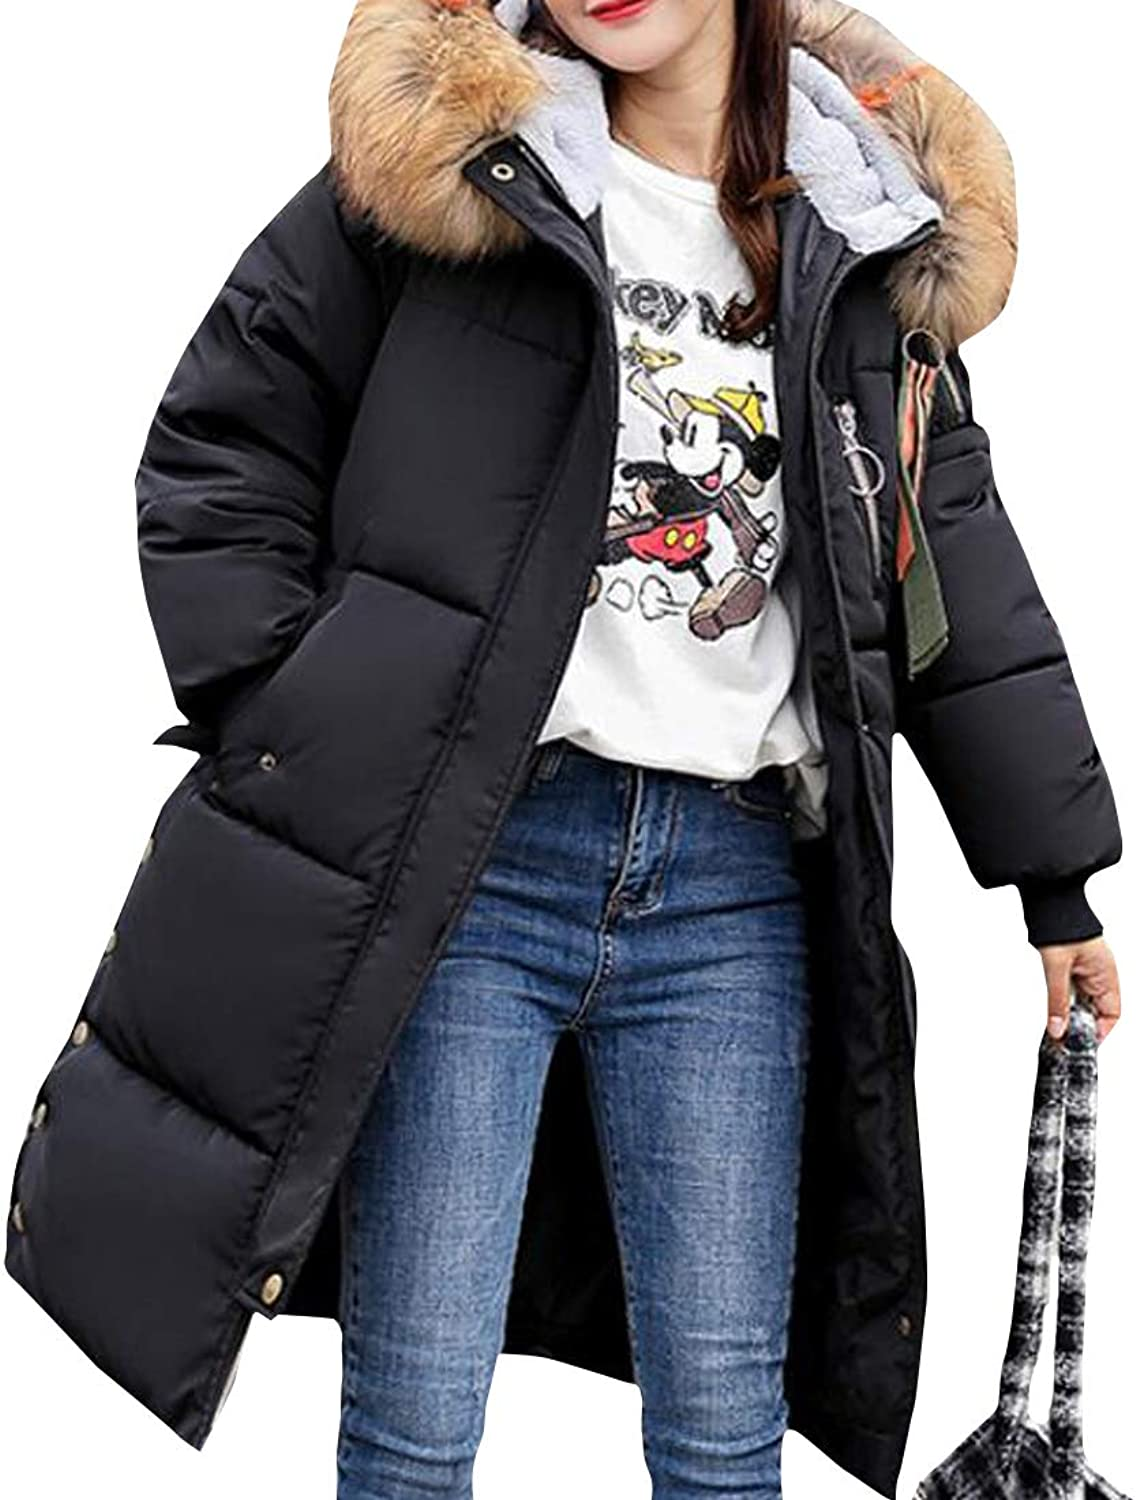 JSY Women's Outerwear Down Coat Warm Hooded Winter Quilted Faux Fur Collar Parkas Coat